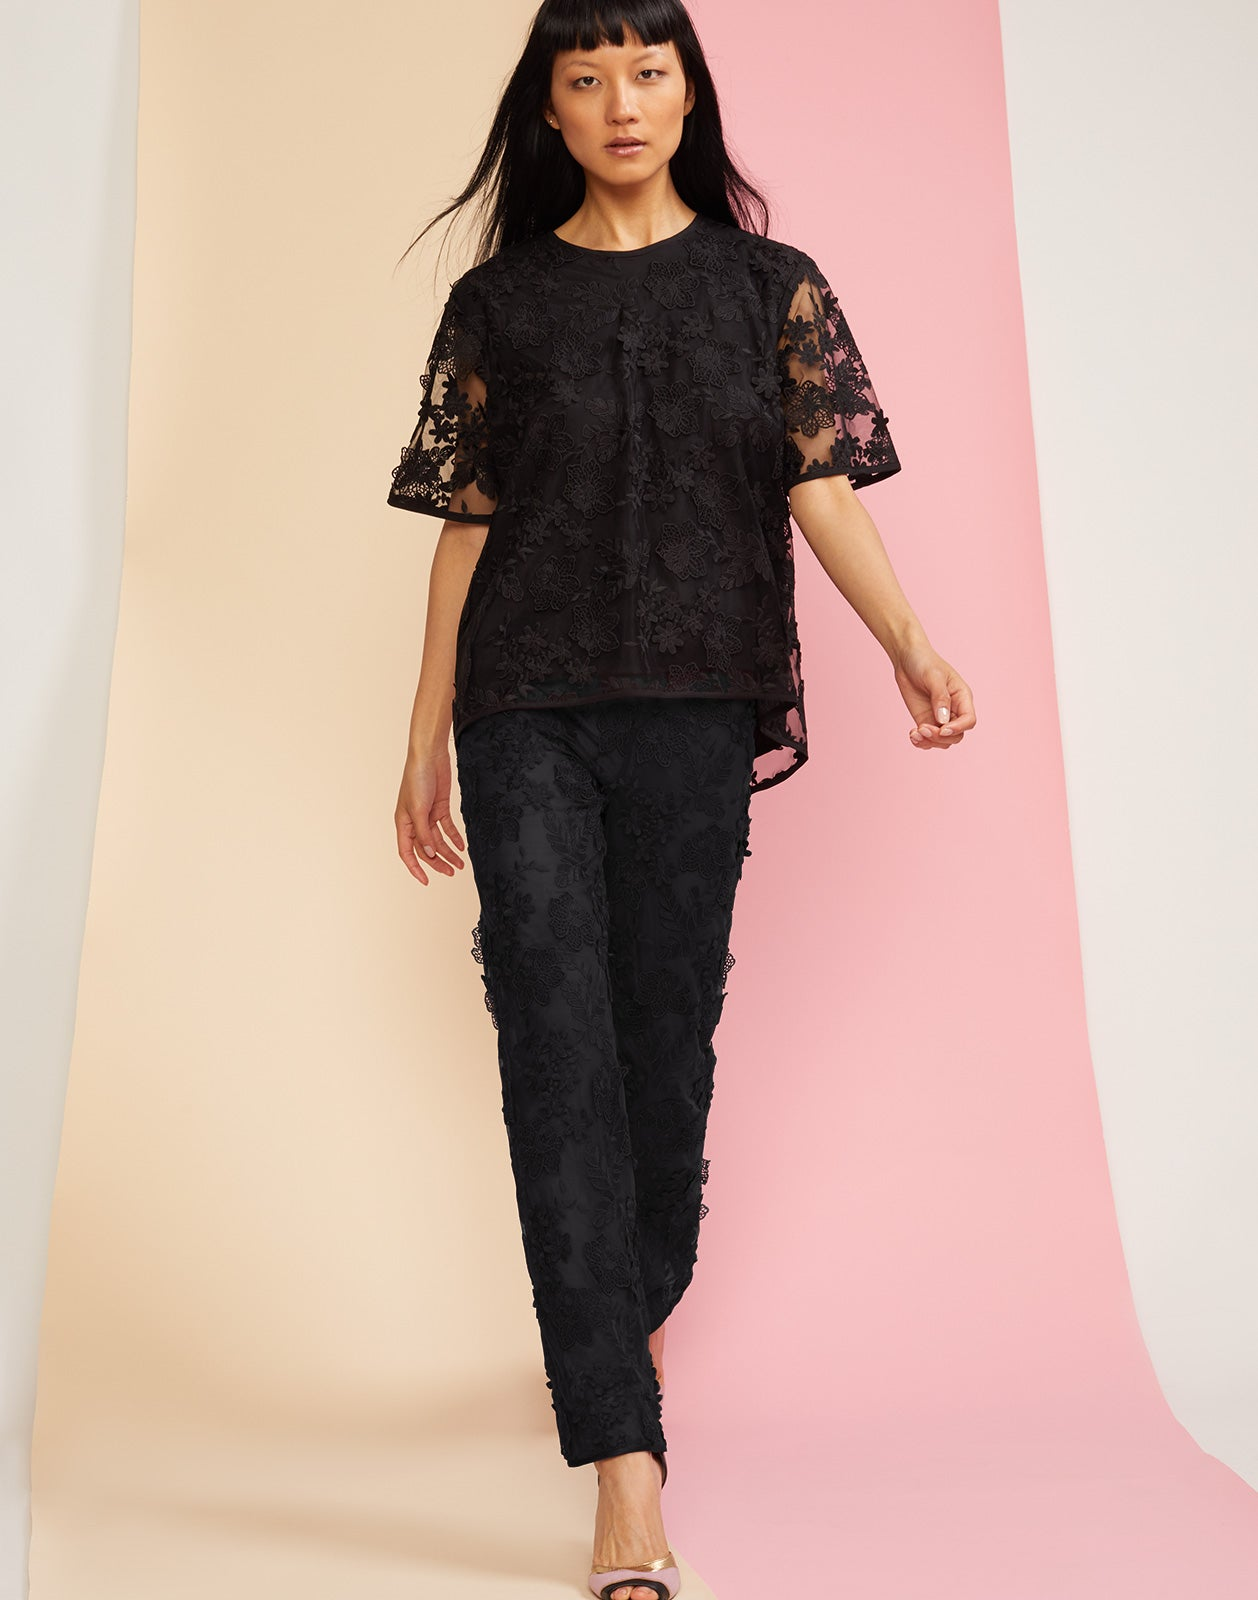 Full front view of crossfade lace tee and pants in black.